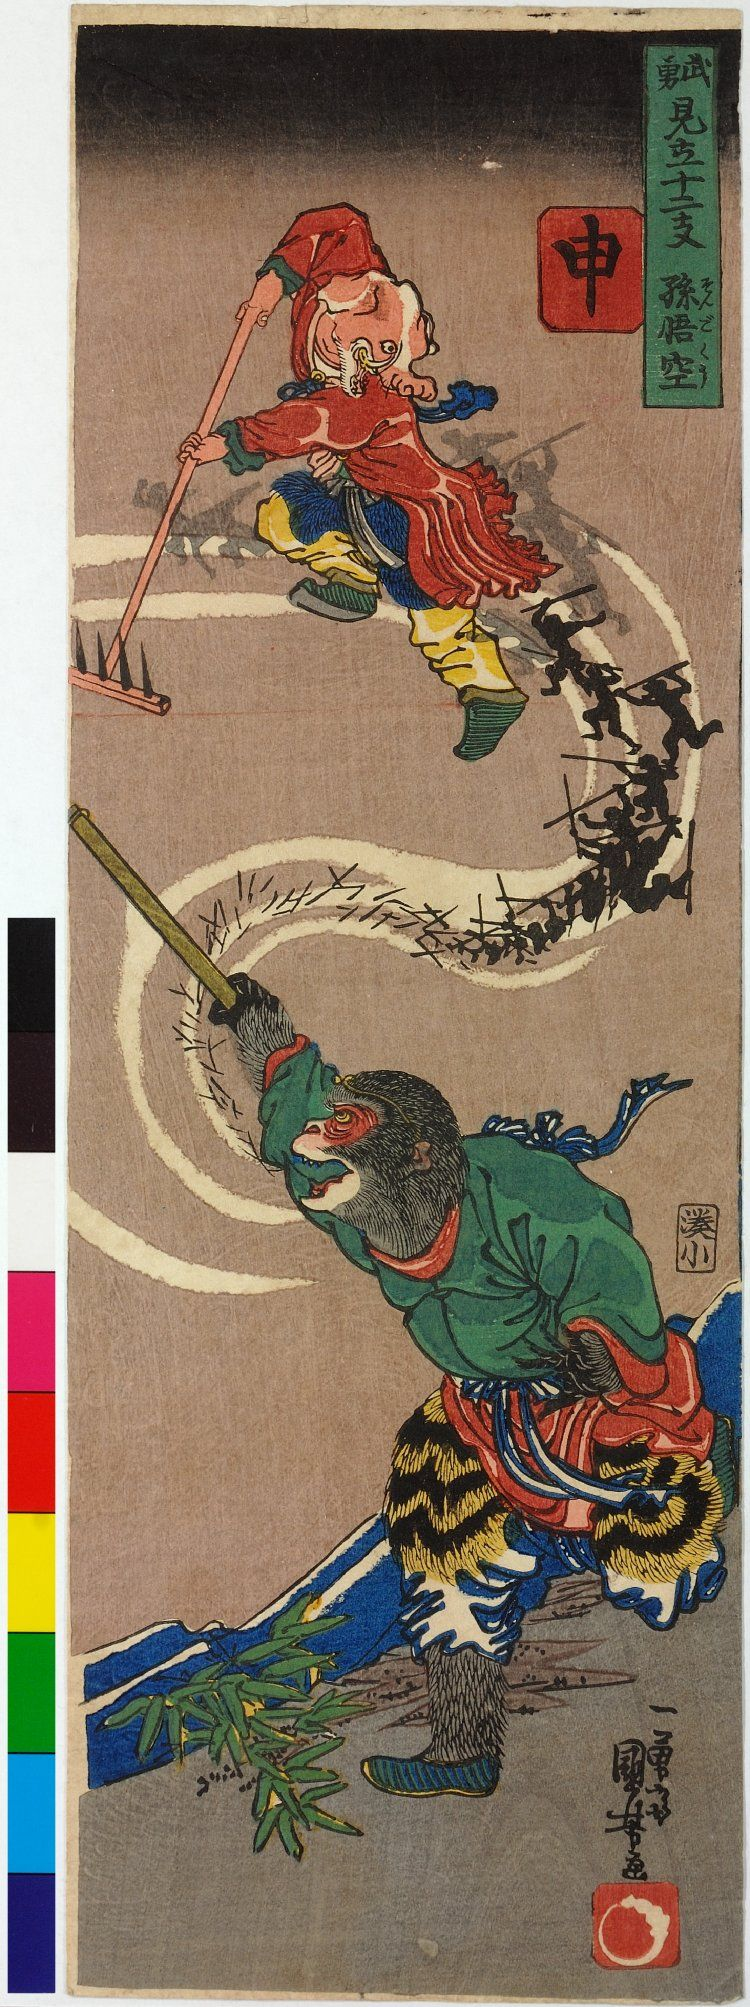 BM 2008,3037.01007. Japanese wood-block print on paper. Sun Wukong the monkey-king magically generates an army of monkeys from his fur to attack the pig Zhu Bajie. Print artist Utagawa Kuniyoshi. On loan from Prof Arthur R Miller.